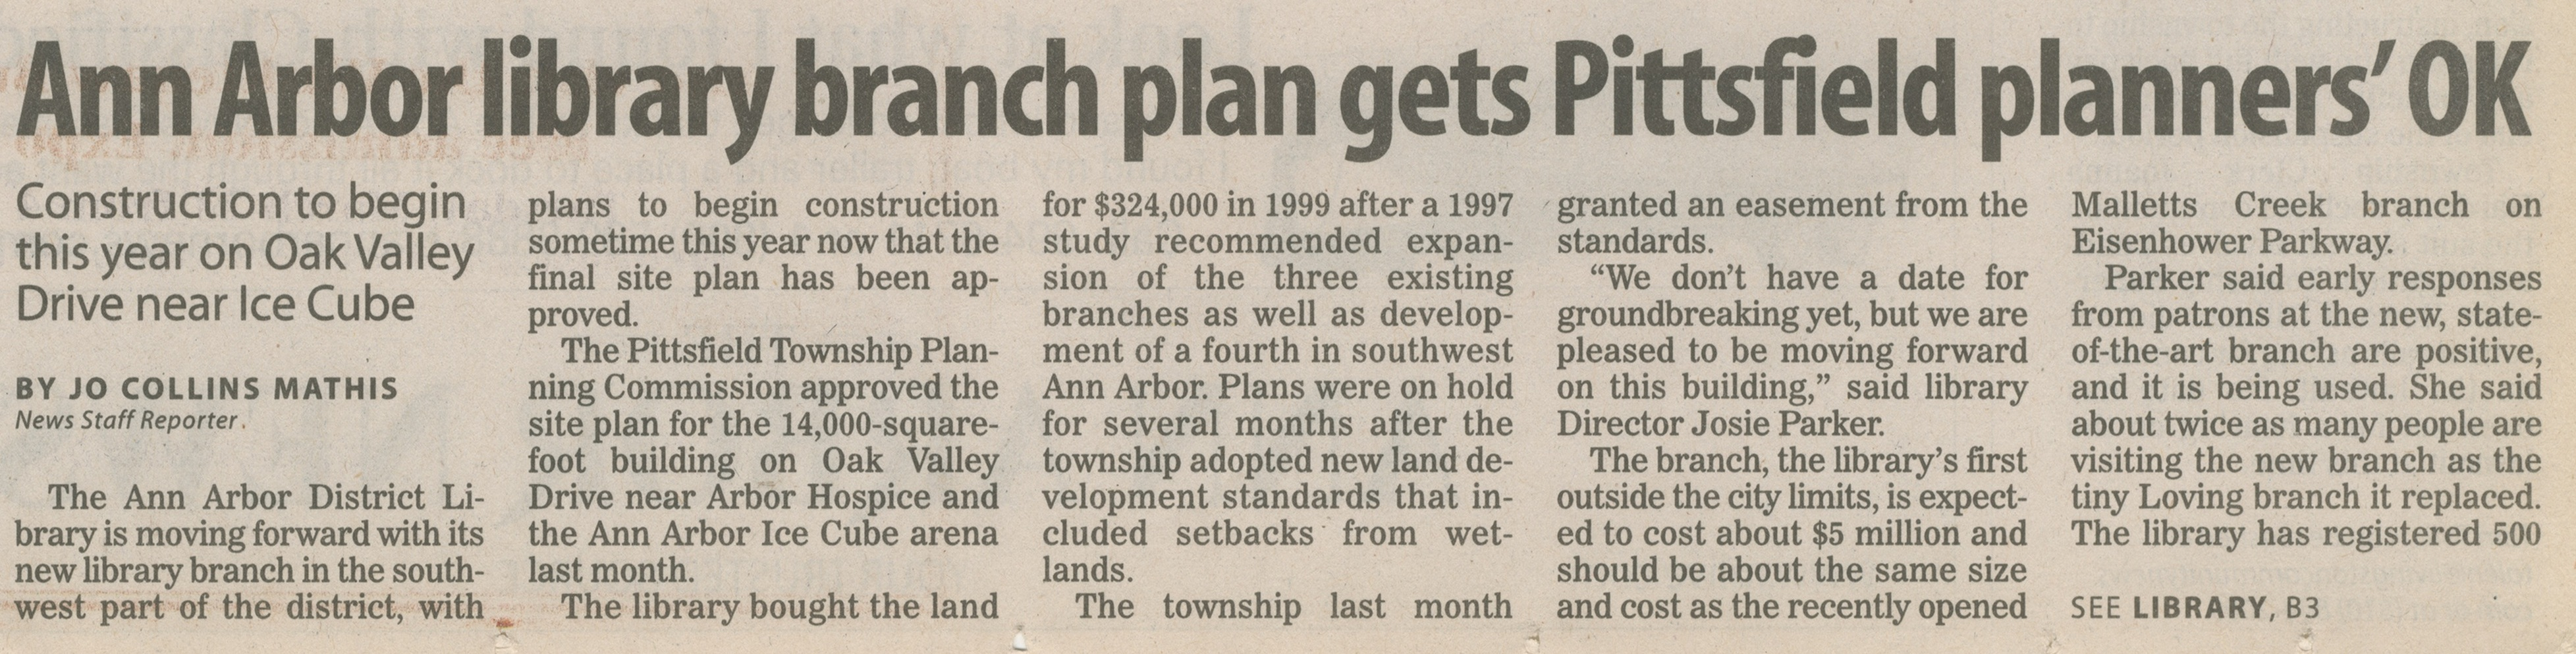 Ann Arbor Library Branch Plan Gets Pittsfield Planners' OK image